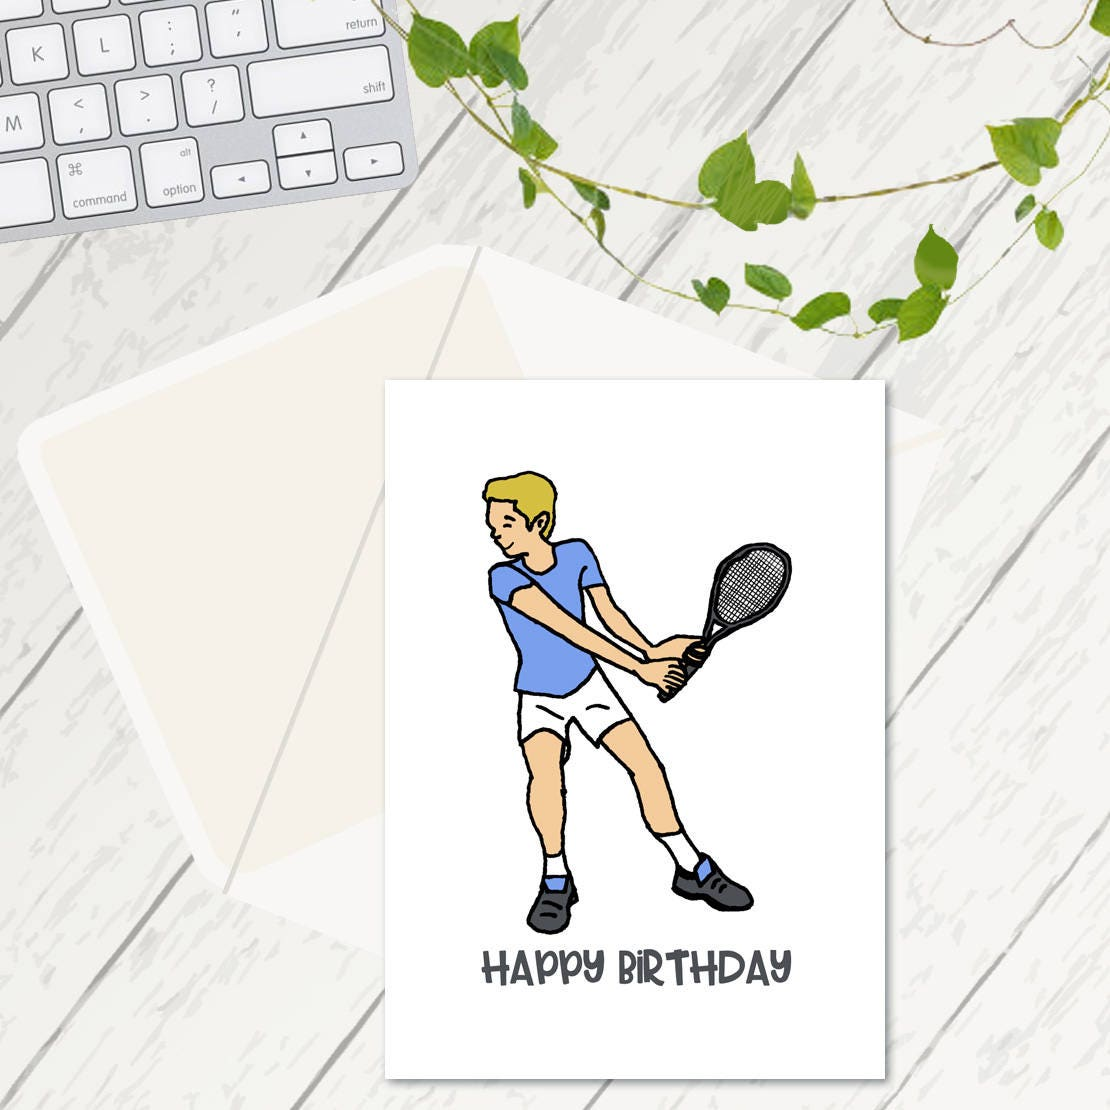 Tennis Player Birthday Cards Tennis Cards Cards For Him Birthday